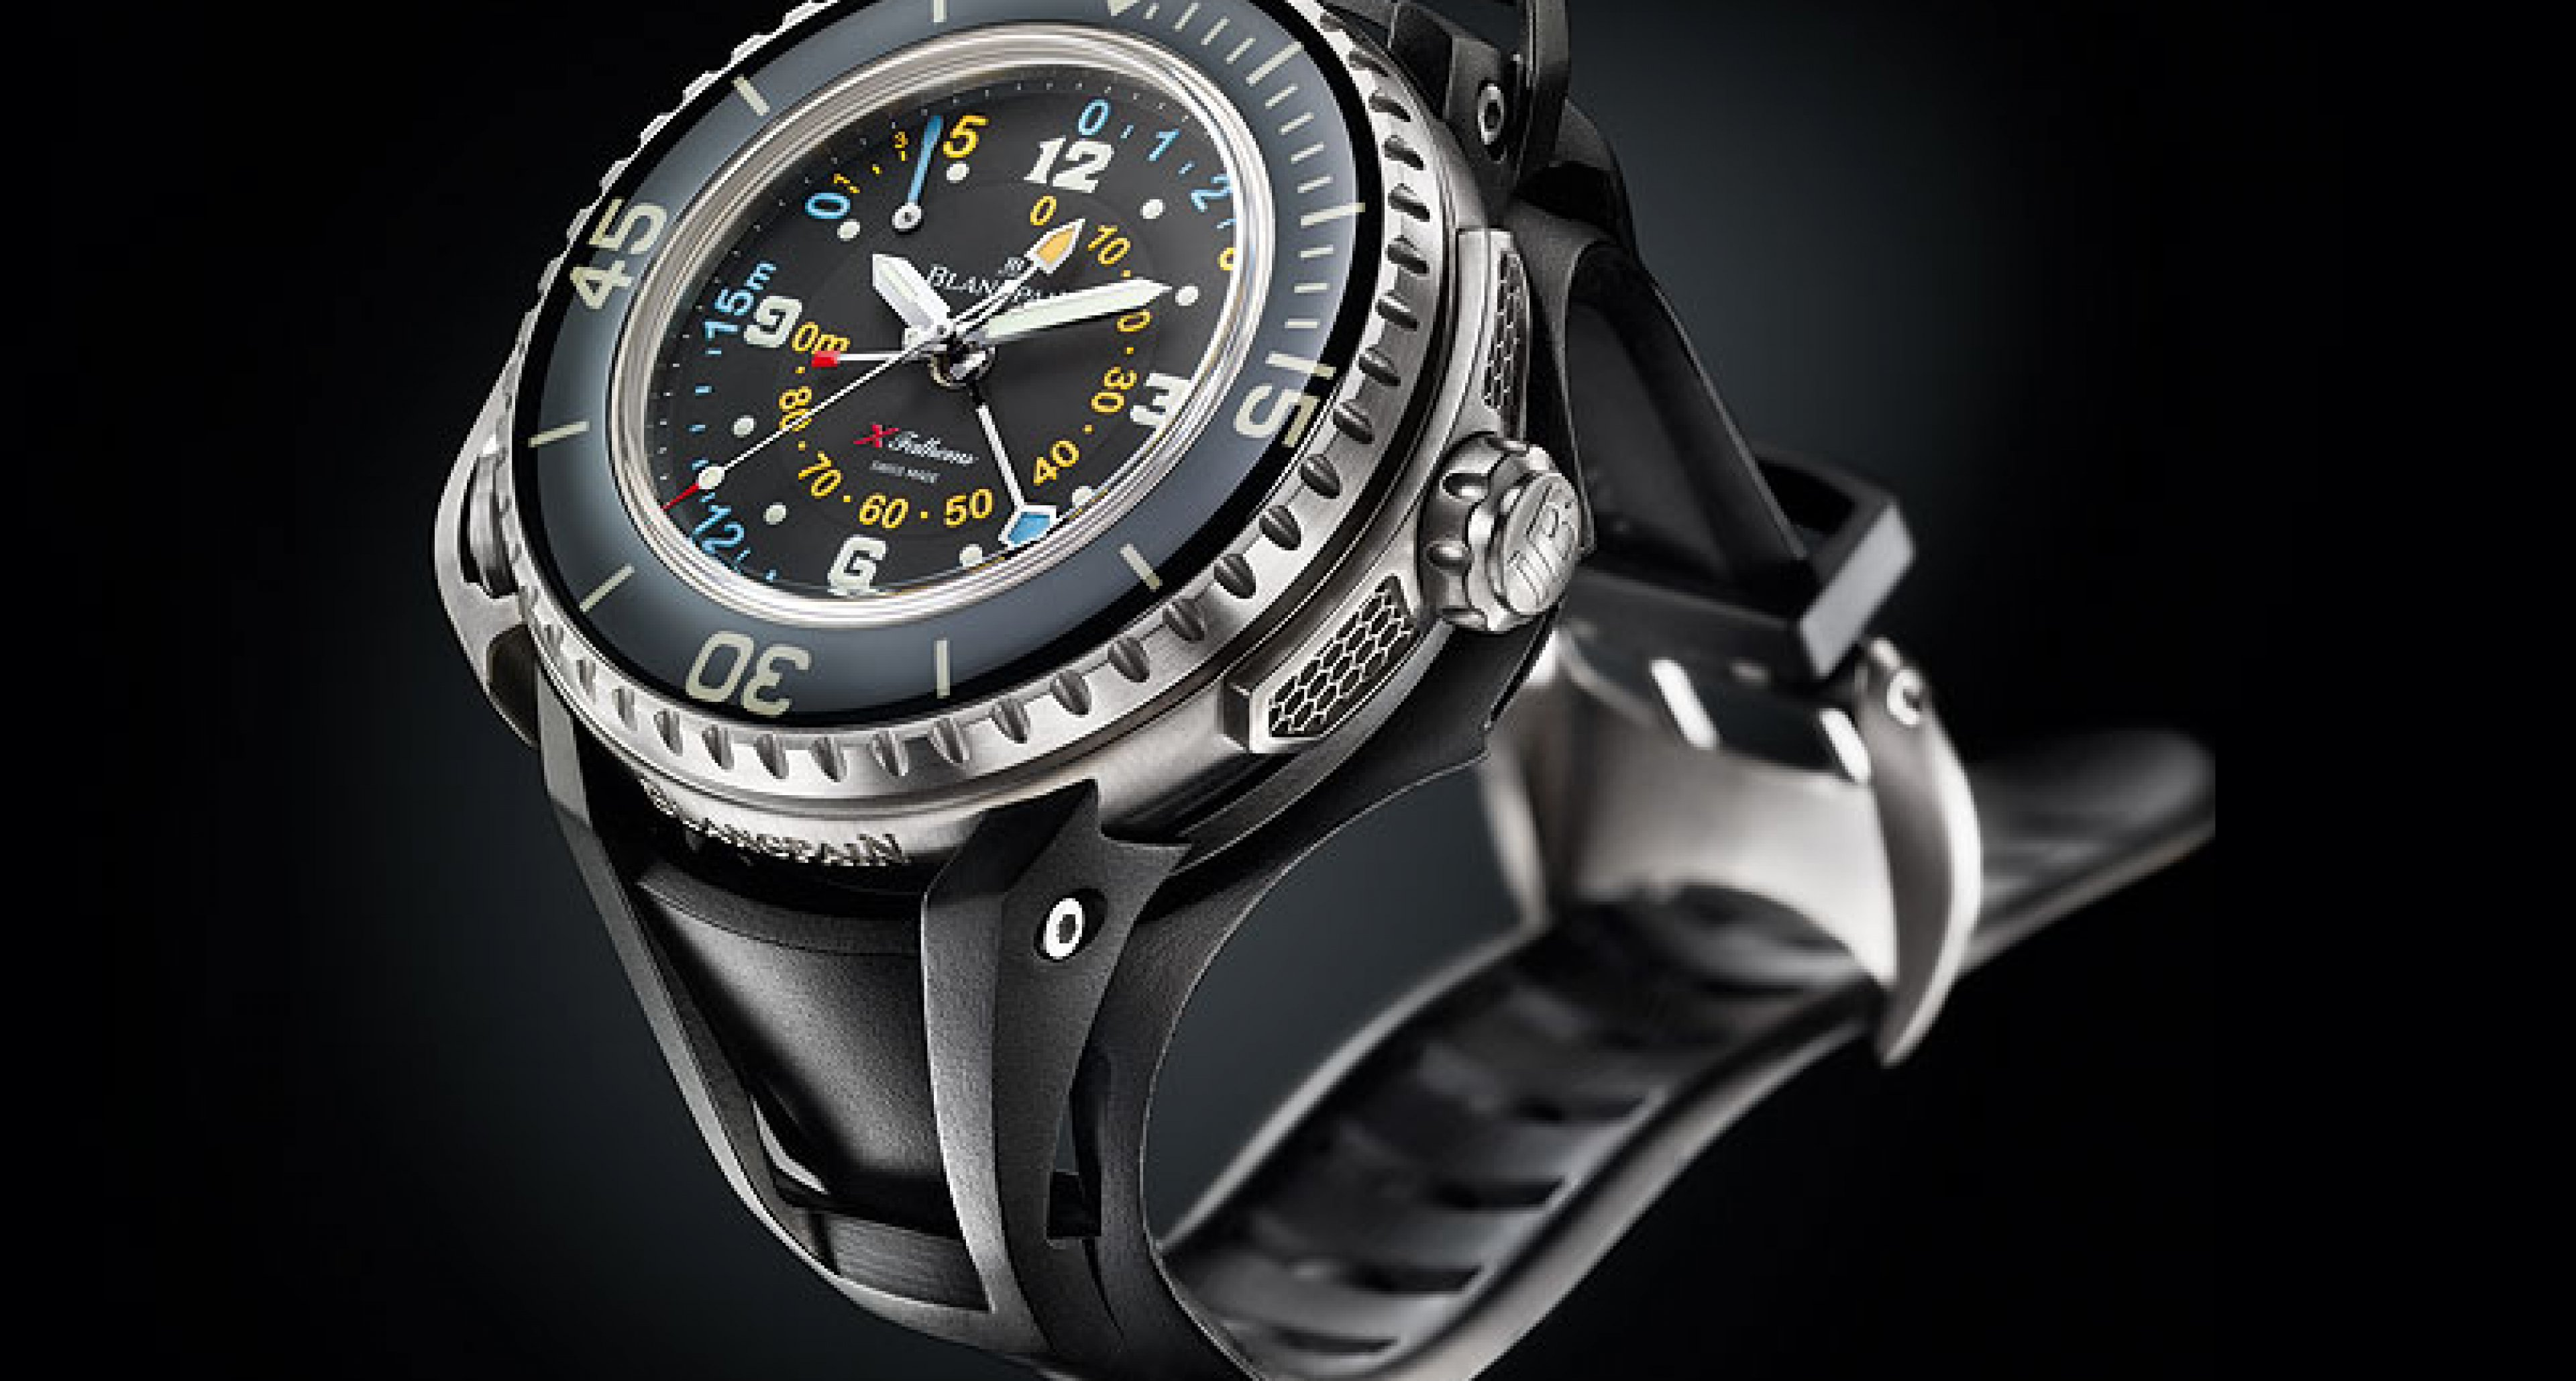 Blancpain X Fathoms: Tested to the limit